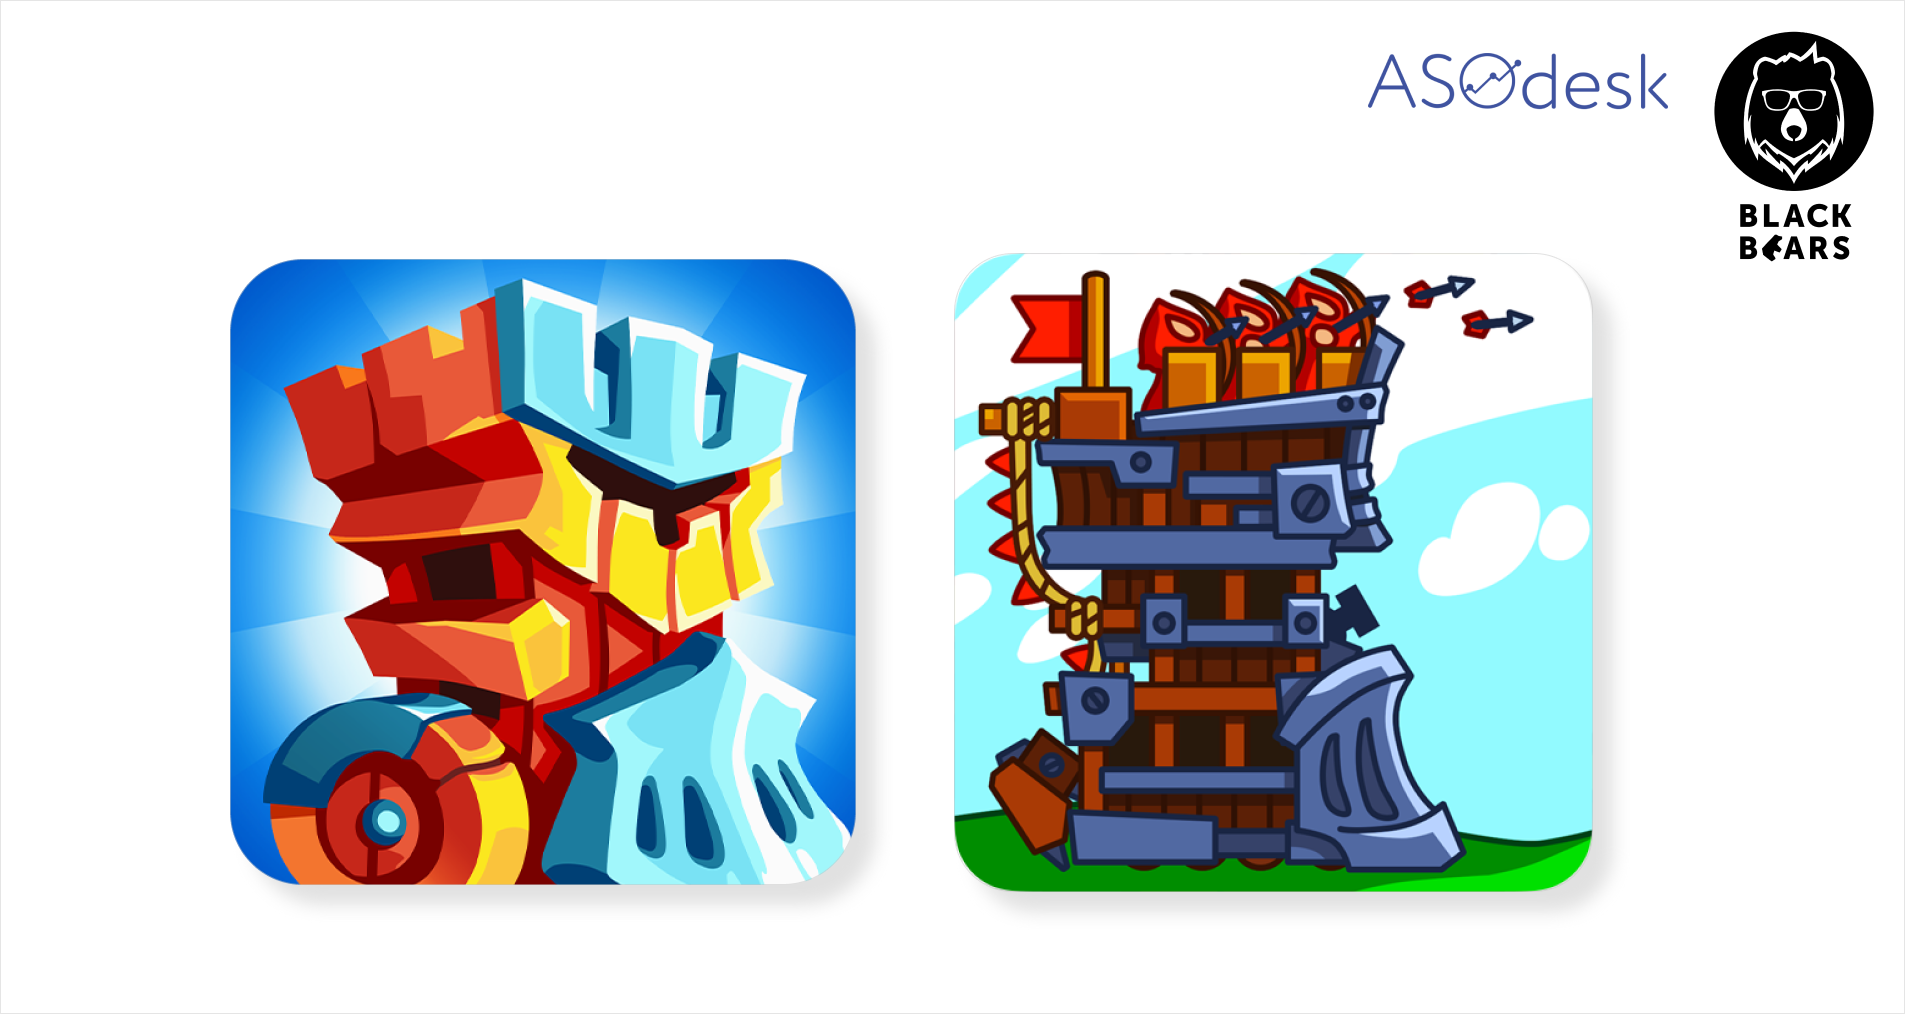 A/B testing of the Towerlands app icon